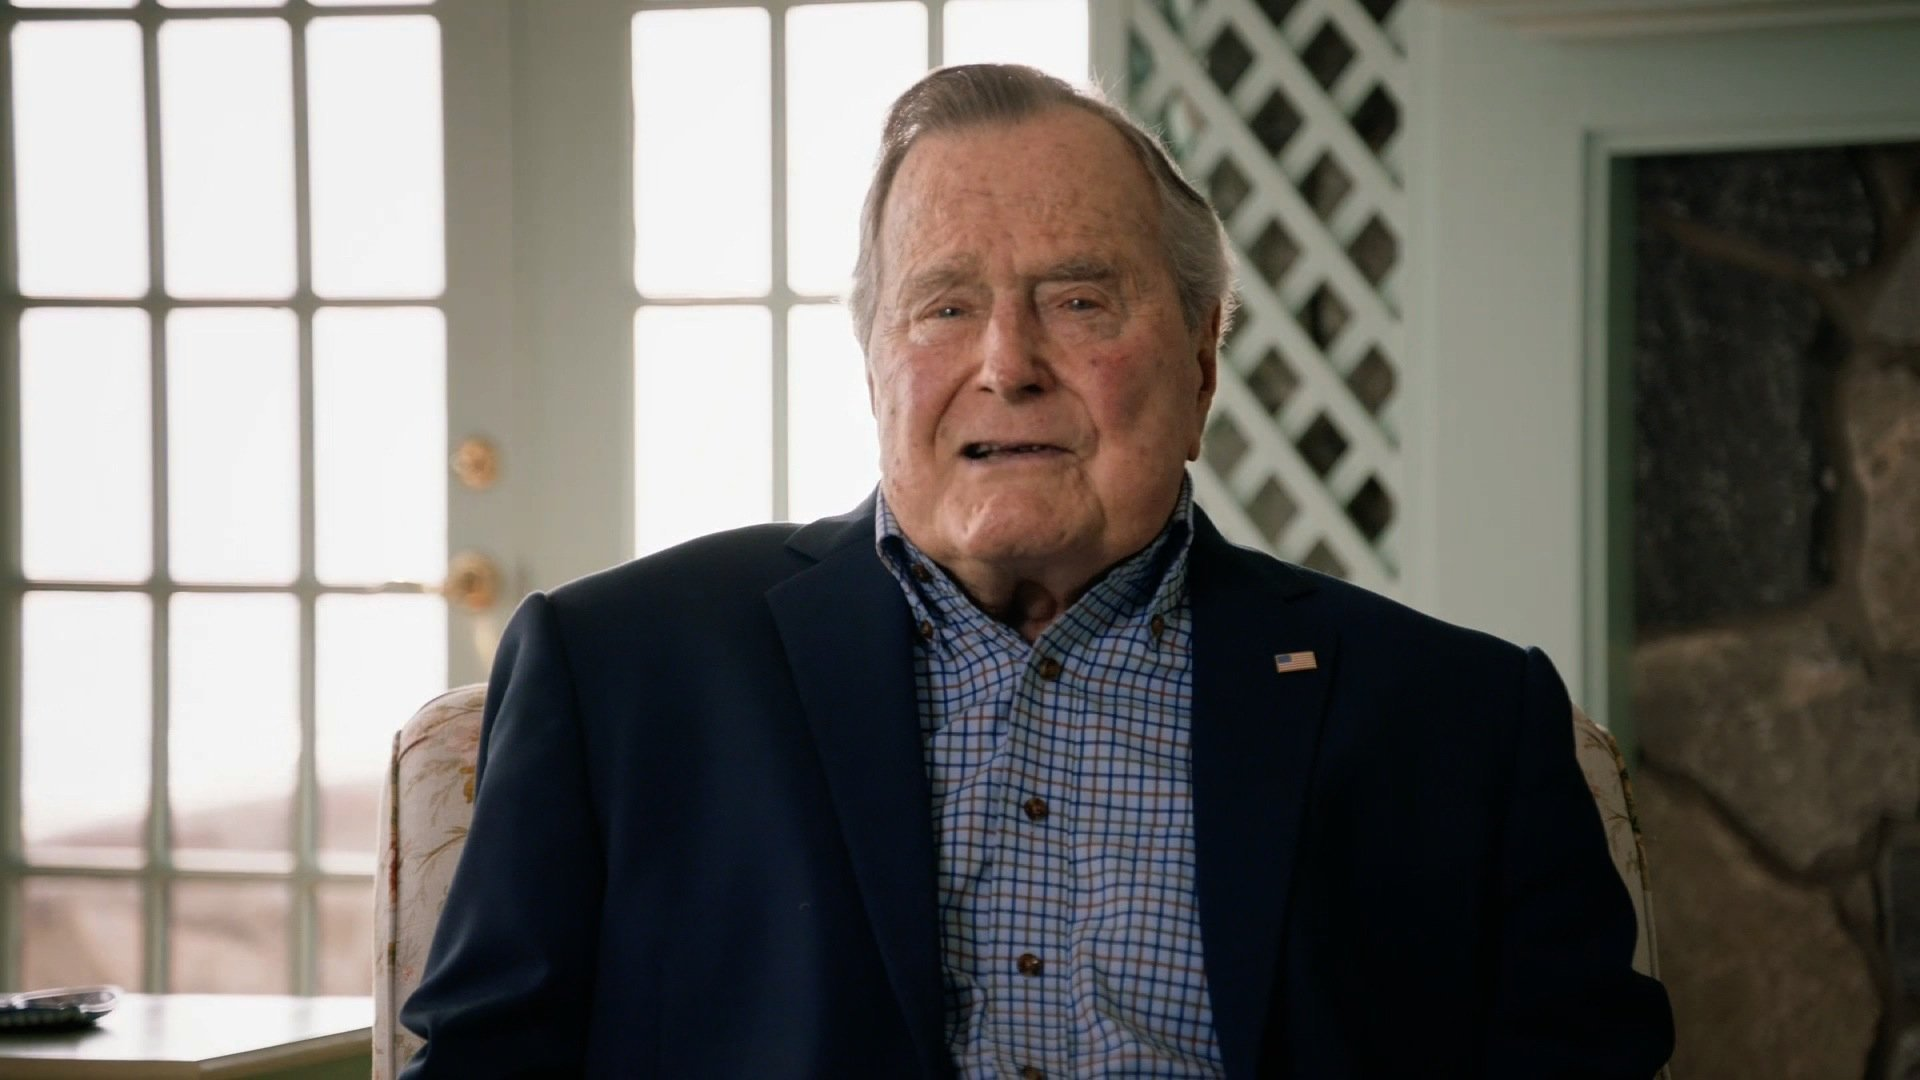 All five living former US presidents-- former Presidents George H.W. Bush, Bill Clinton, Jimmy Carter, George Bush and Barack Obama -- appeared in a video and asked Americans to respond to the devastation wrought by the hurricane.